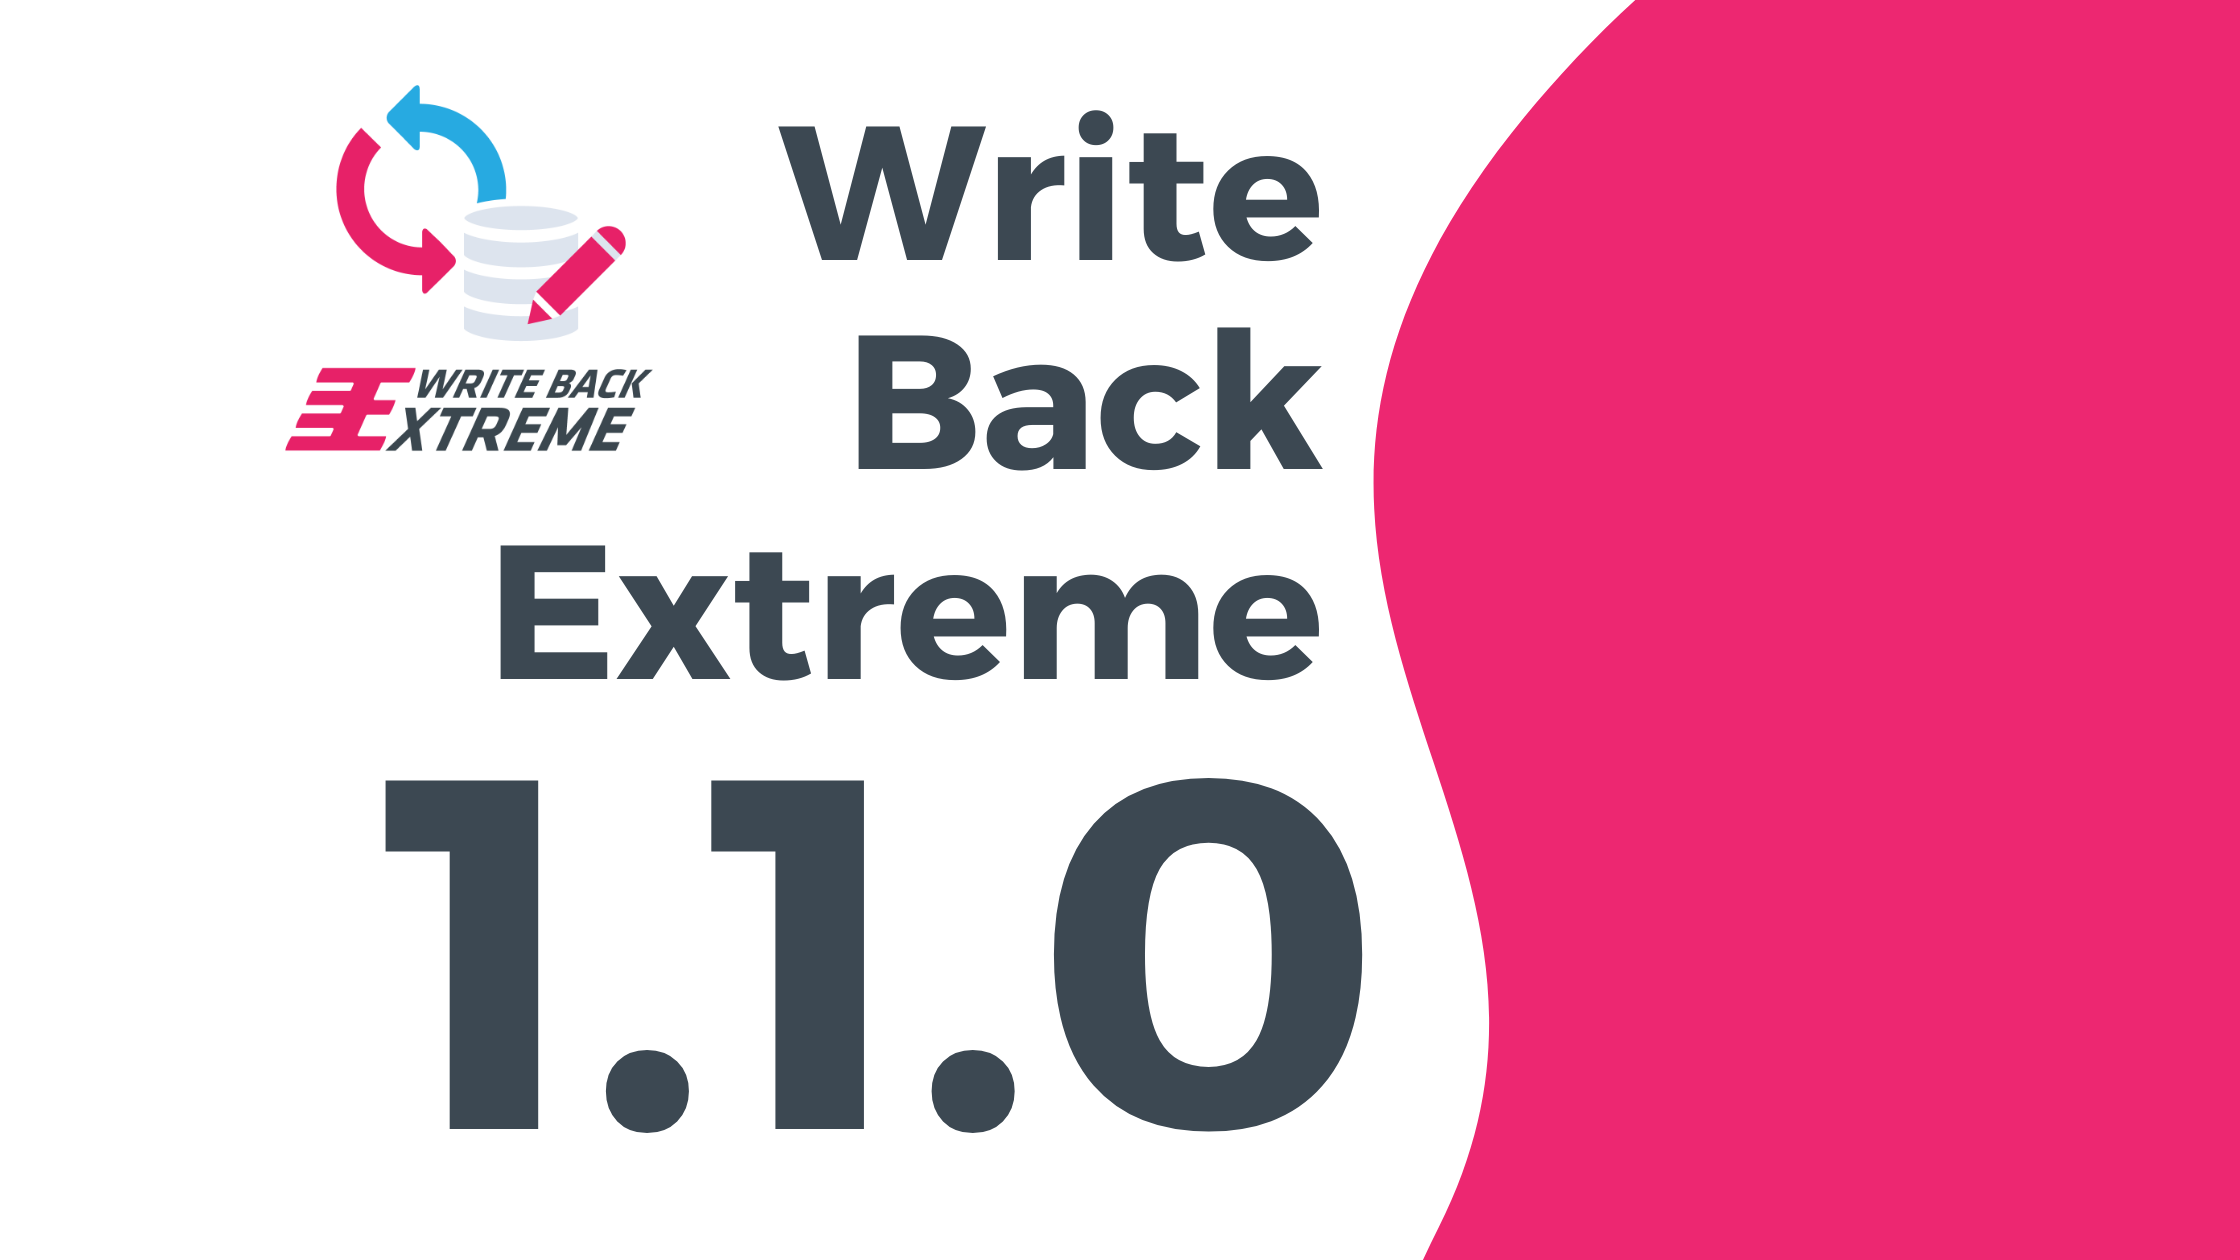 Write Back Extreme update